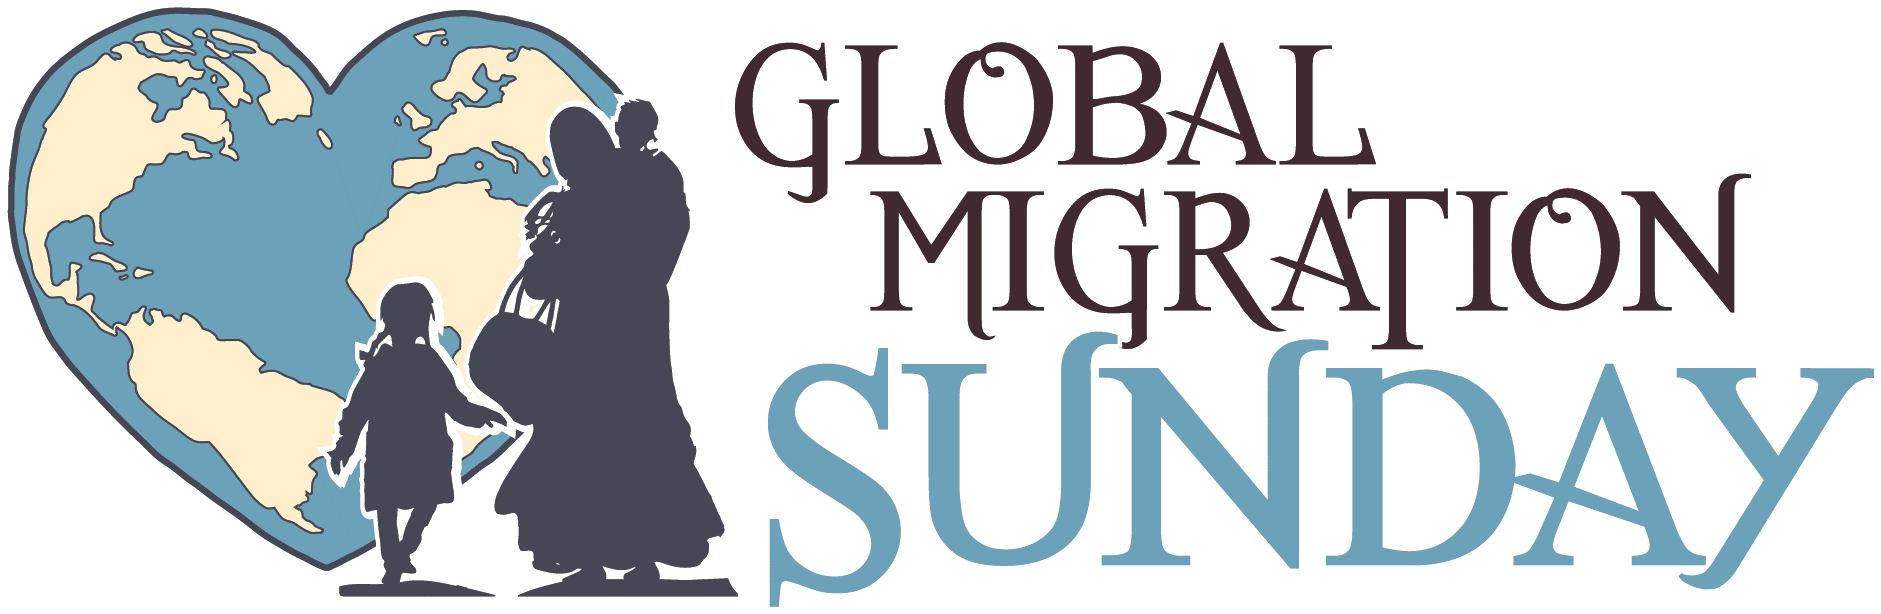 Global Migration Sunday – 12/3/17